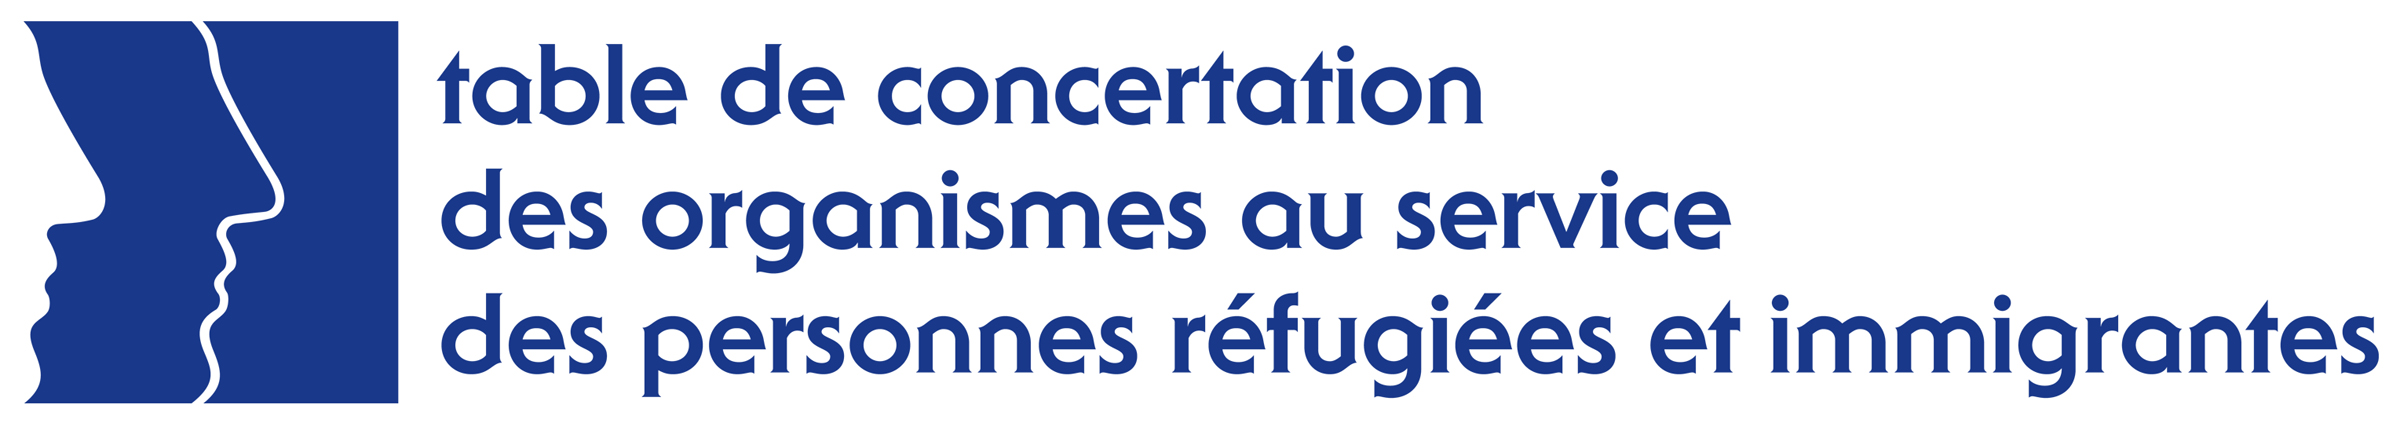 TC des organisme sou services de spersonnes refugiees et immigrantes